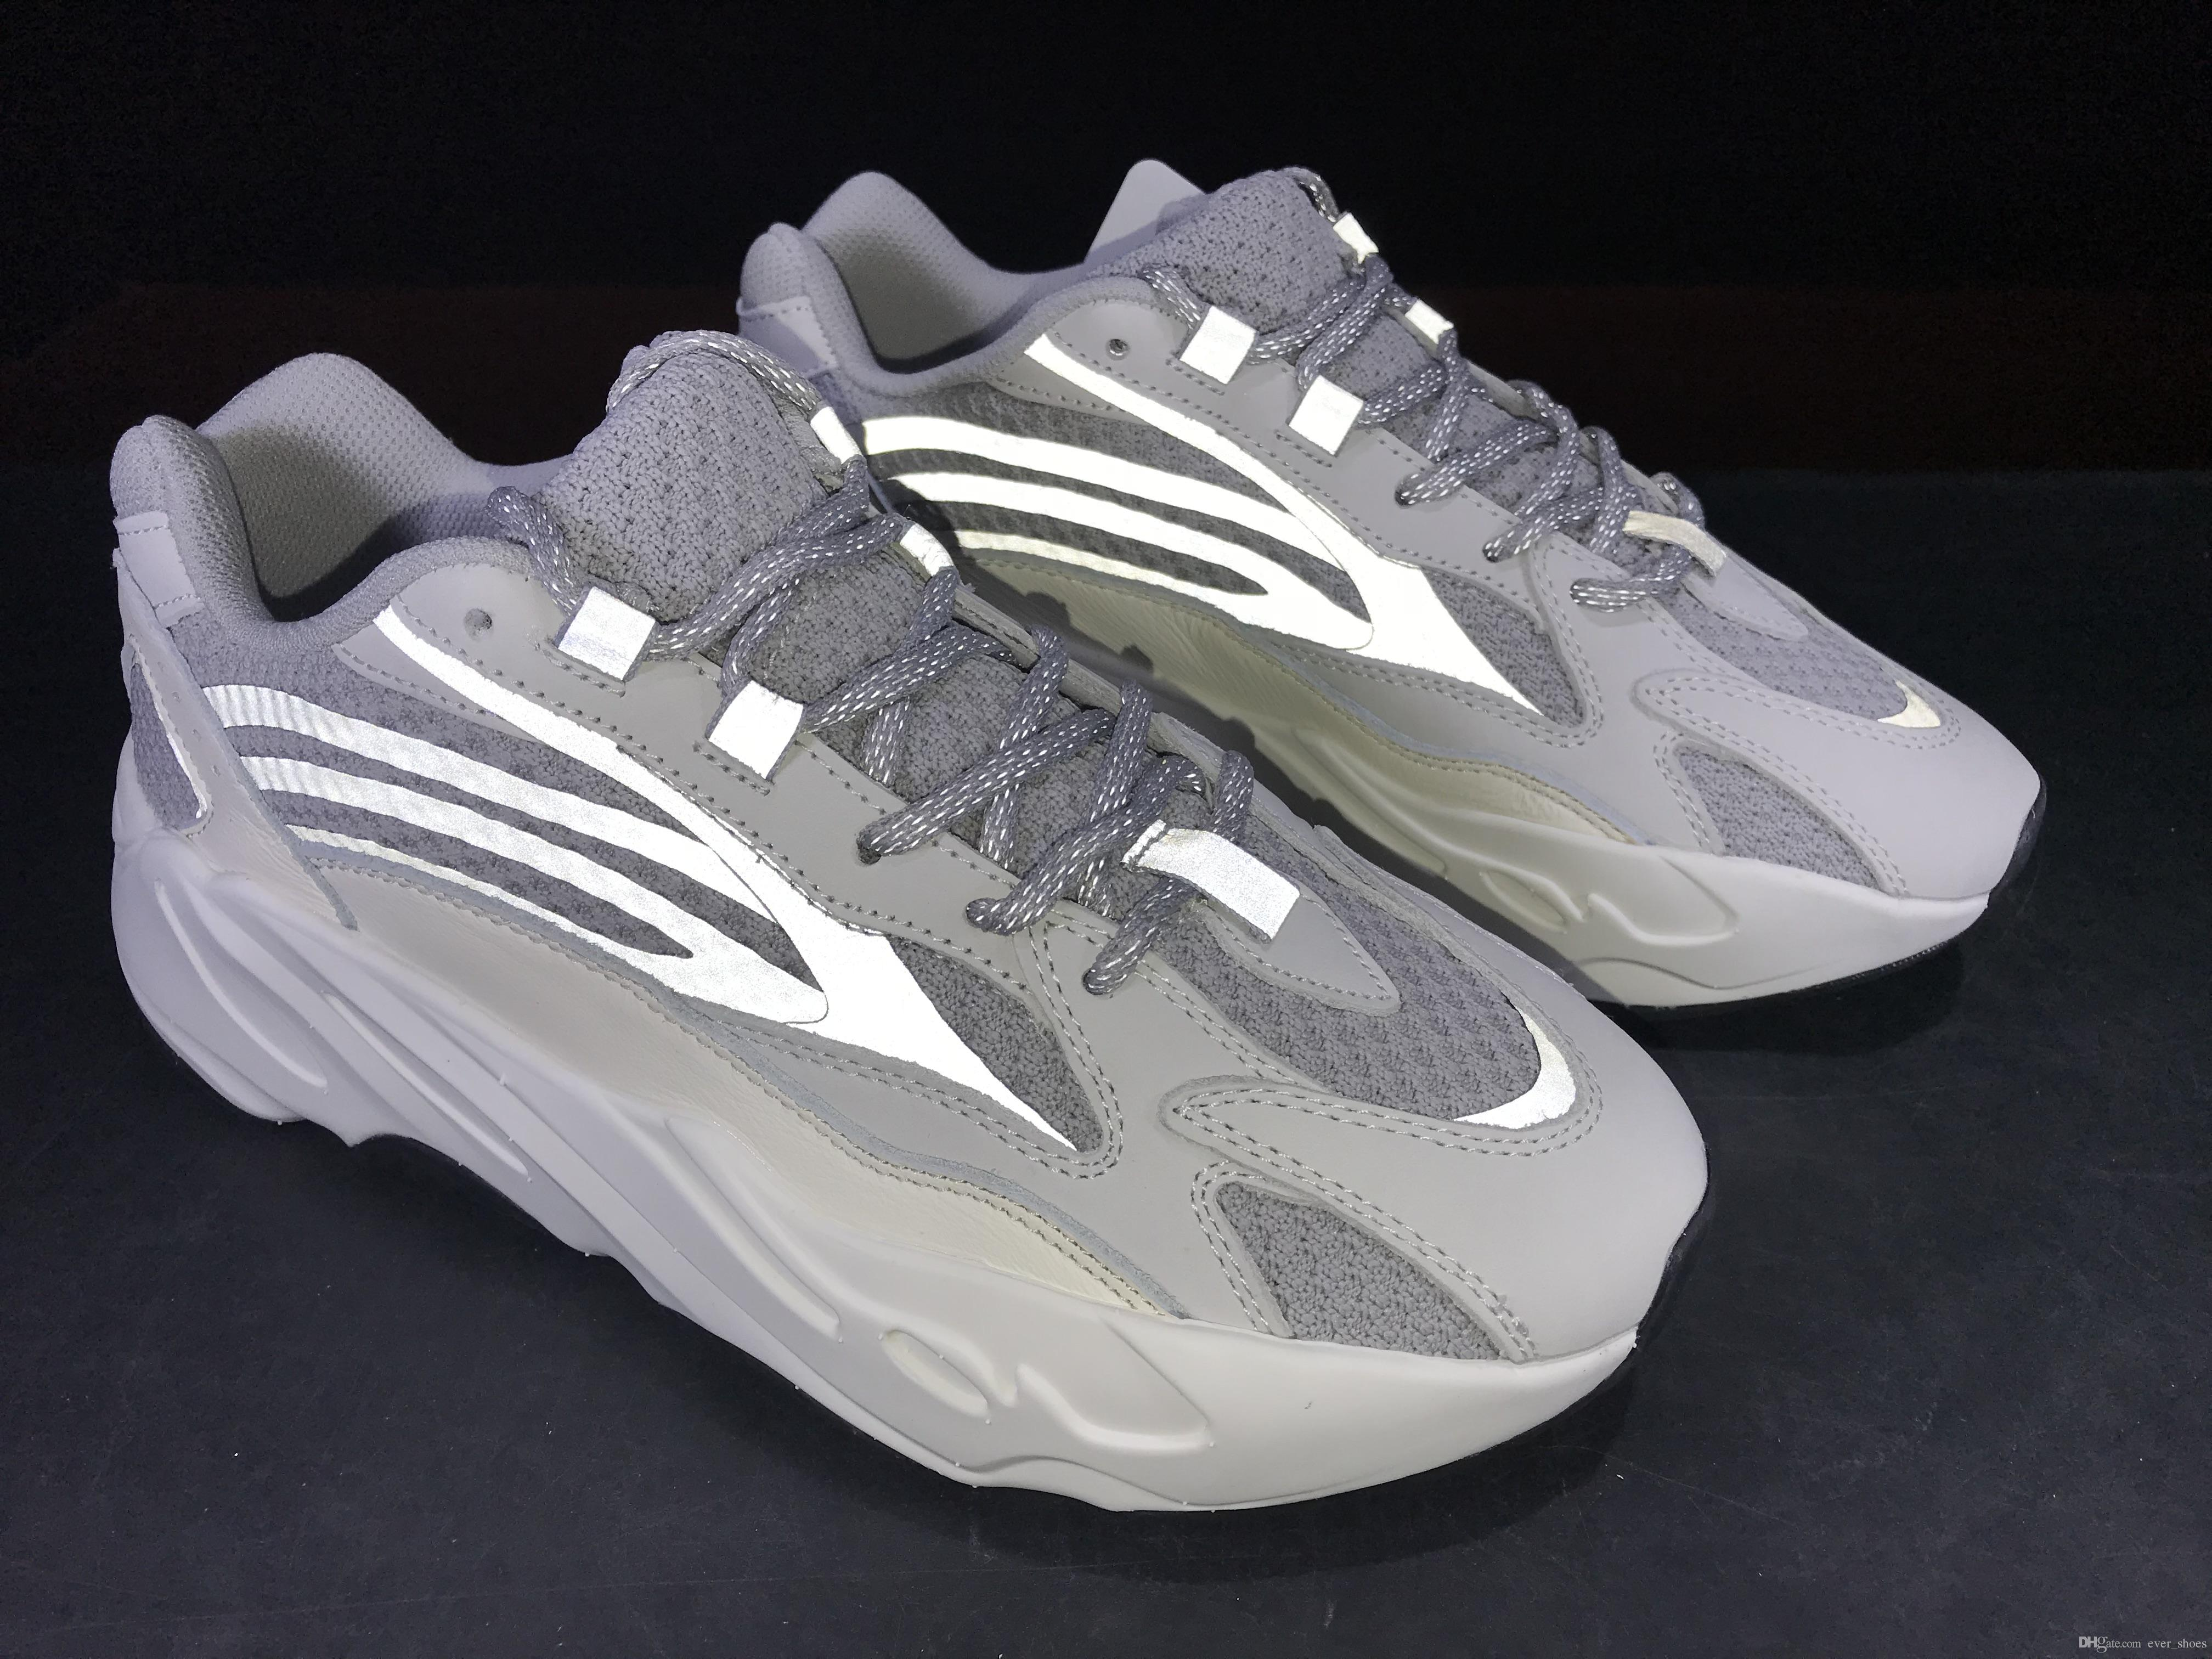 a3b0c9cc10e23 2019 Hot Kanye West 700 V2 Static EF2829 Wave Runner Running Shoes 700s  Sports Sneakers Mauve Solid Grey Luxury Designer Shoes Size 36 46 Tennis  Shoes ...